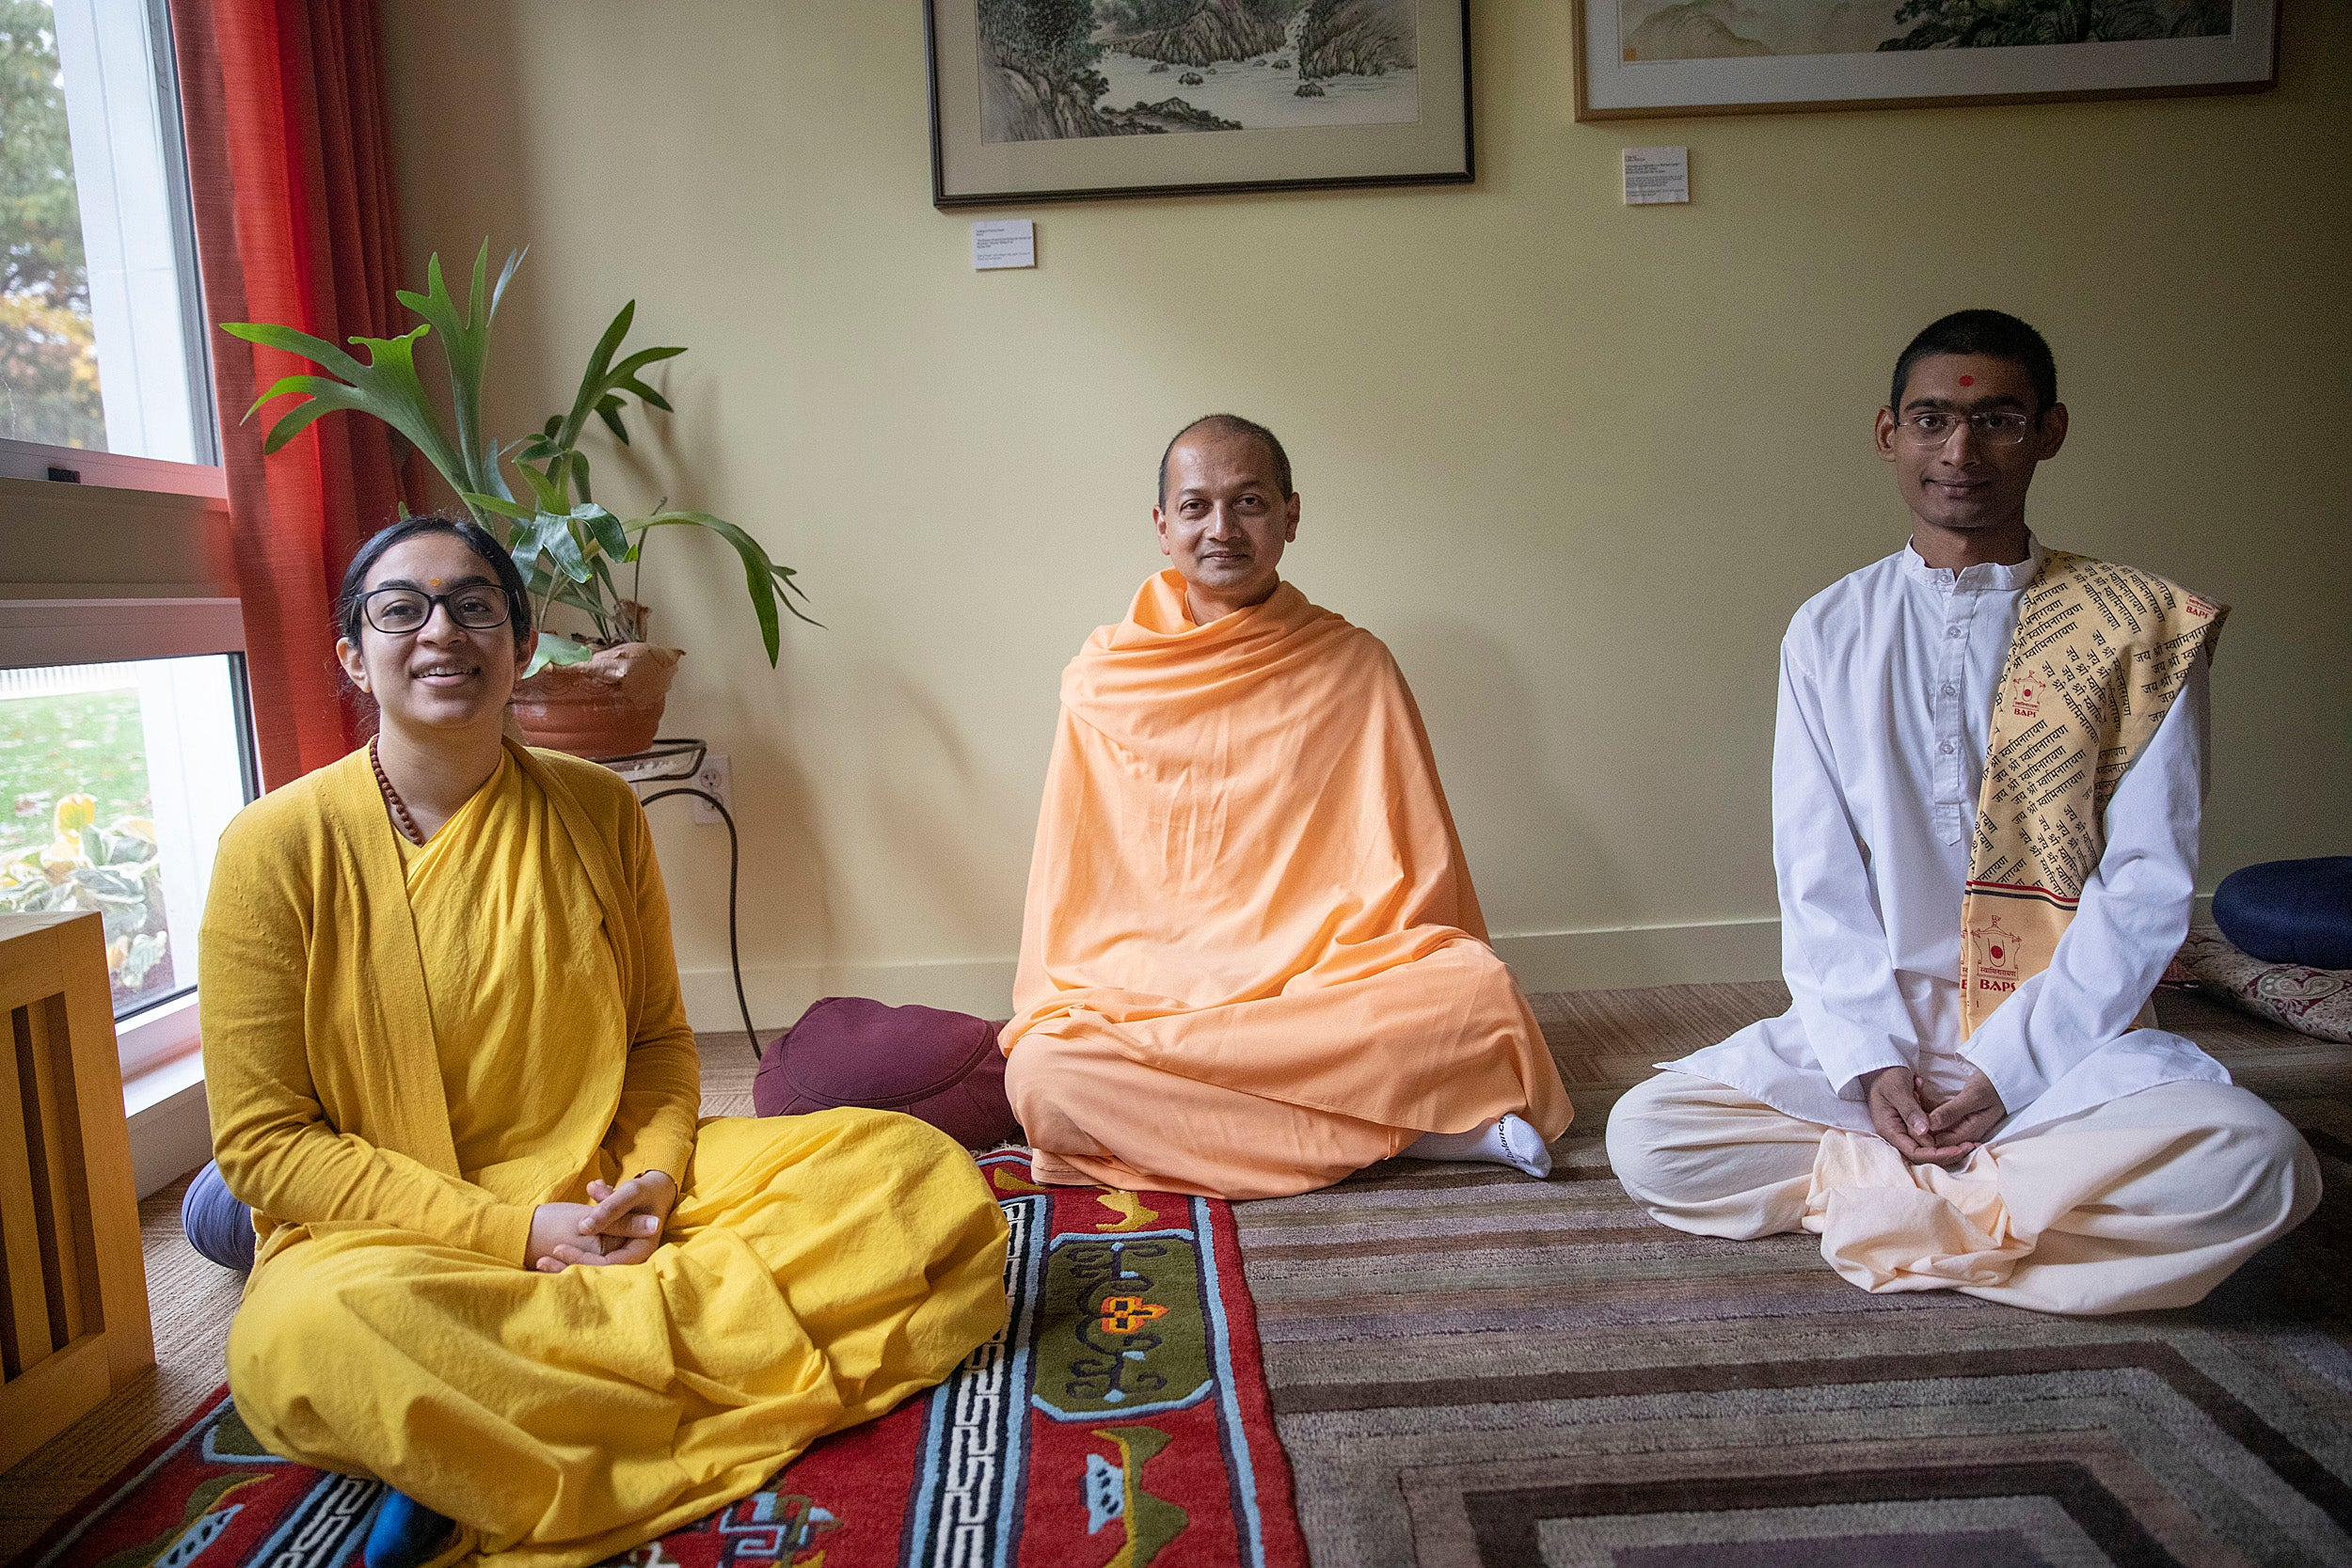 Three Hindu monastics at Harvard Divinity School, all seated.